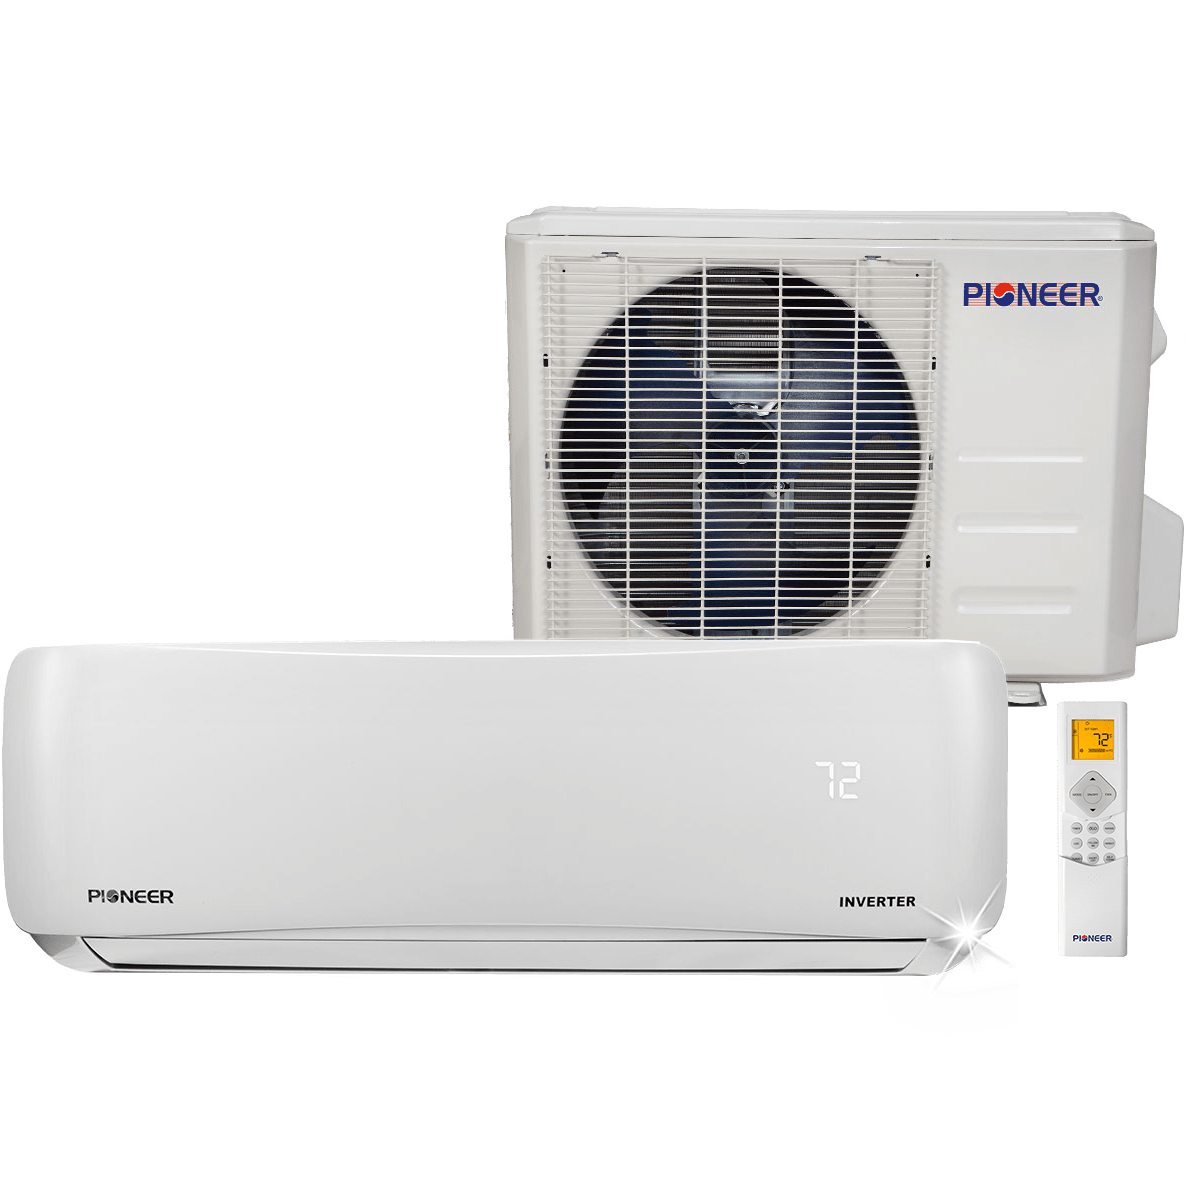 Pioneer 12,000 BTU 115V Mini Split Heat Pump